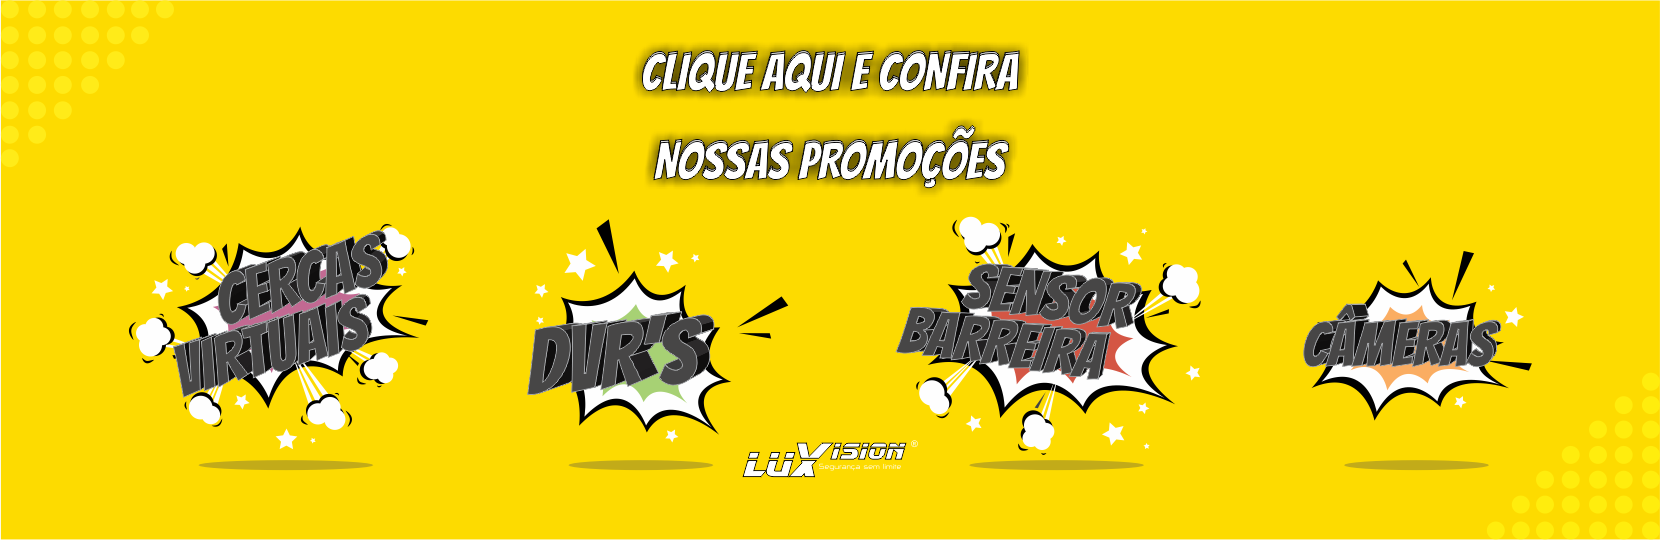 CATEGORIA PROMOCOES